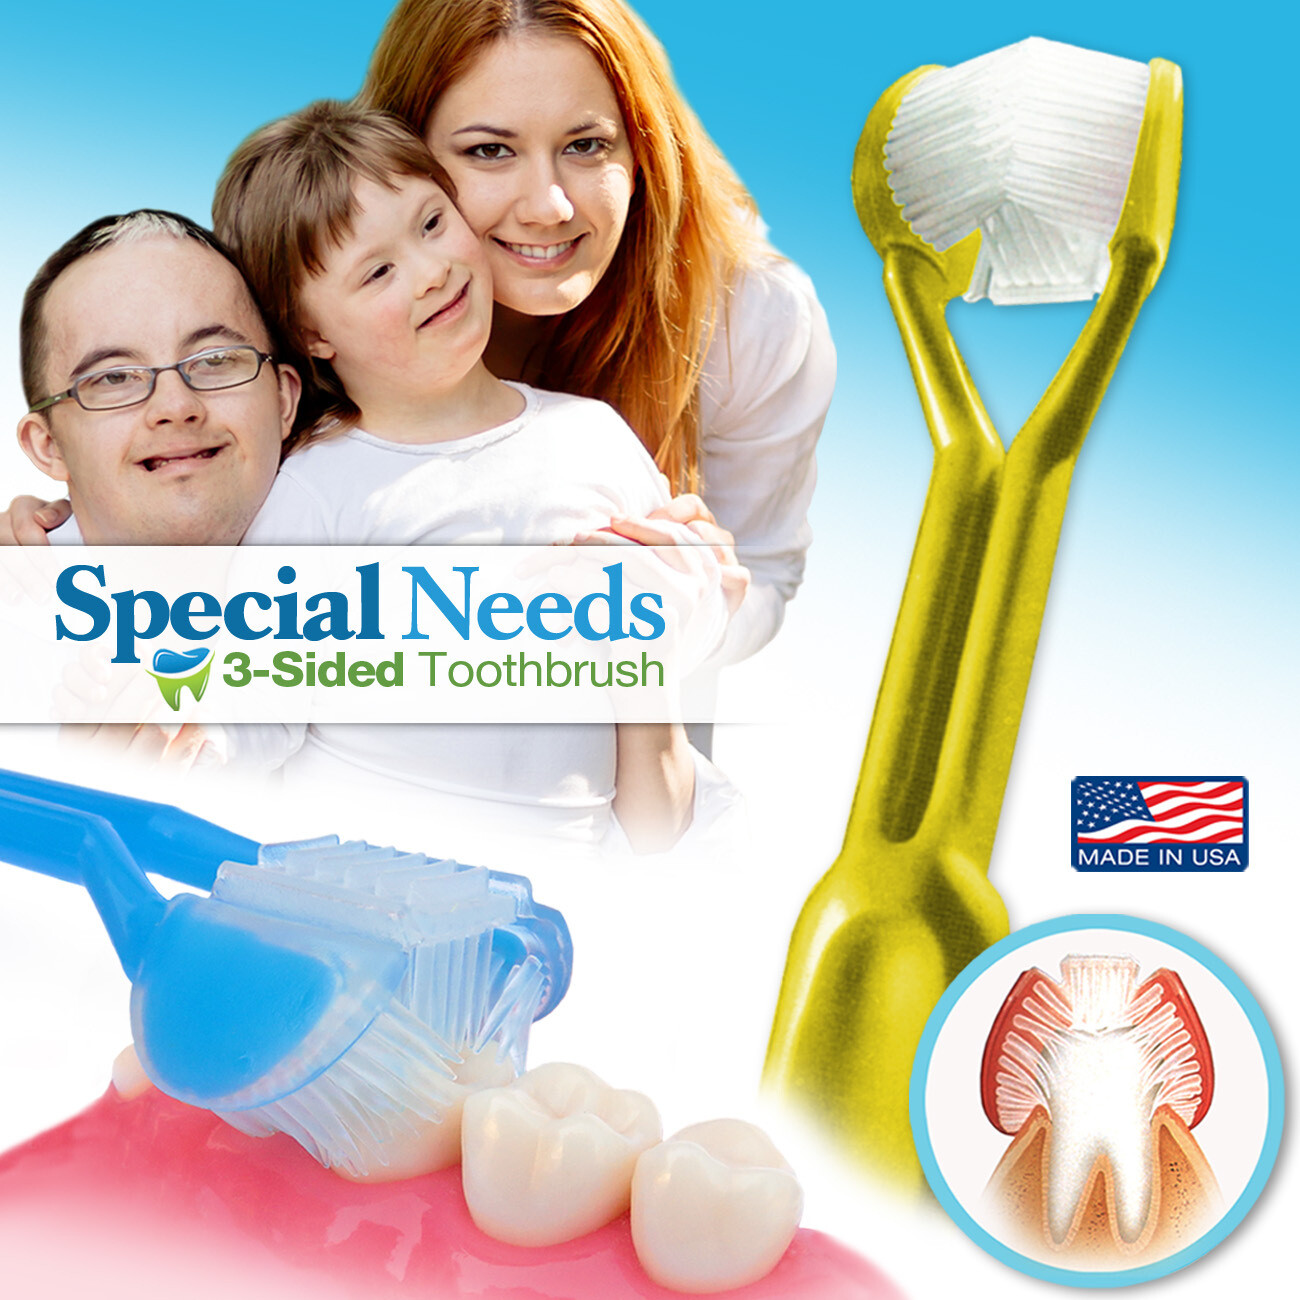 DenTrust for Special Needs   The Only Child-Safe 3-SIDED Toothbrush   Made in USA   Fast, Easy & Clinically Proven   Autism ASD Autistic Aspergers Therapy Parent Caregiver Tactile Sensory Calming Rett